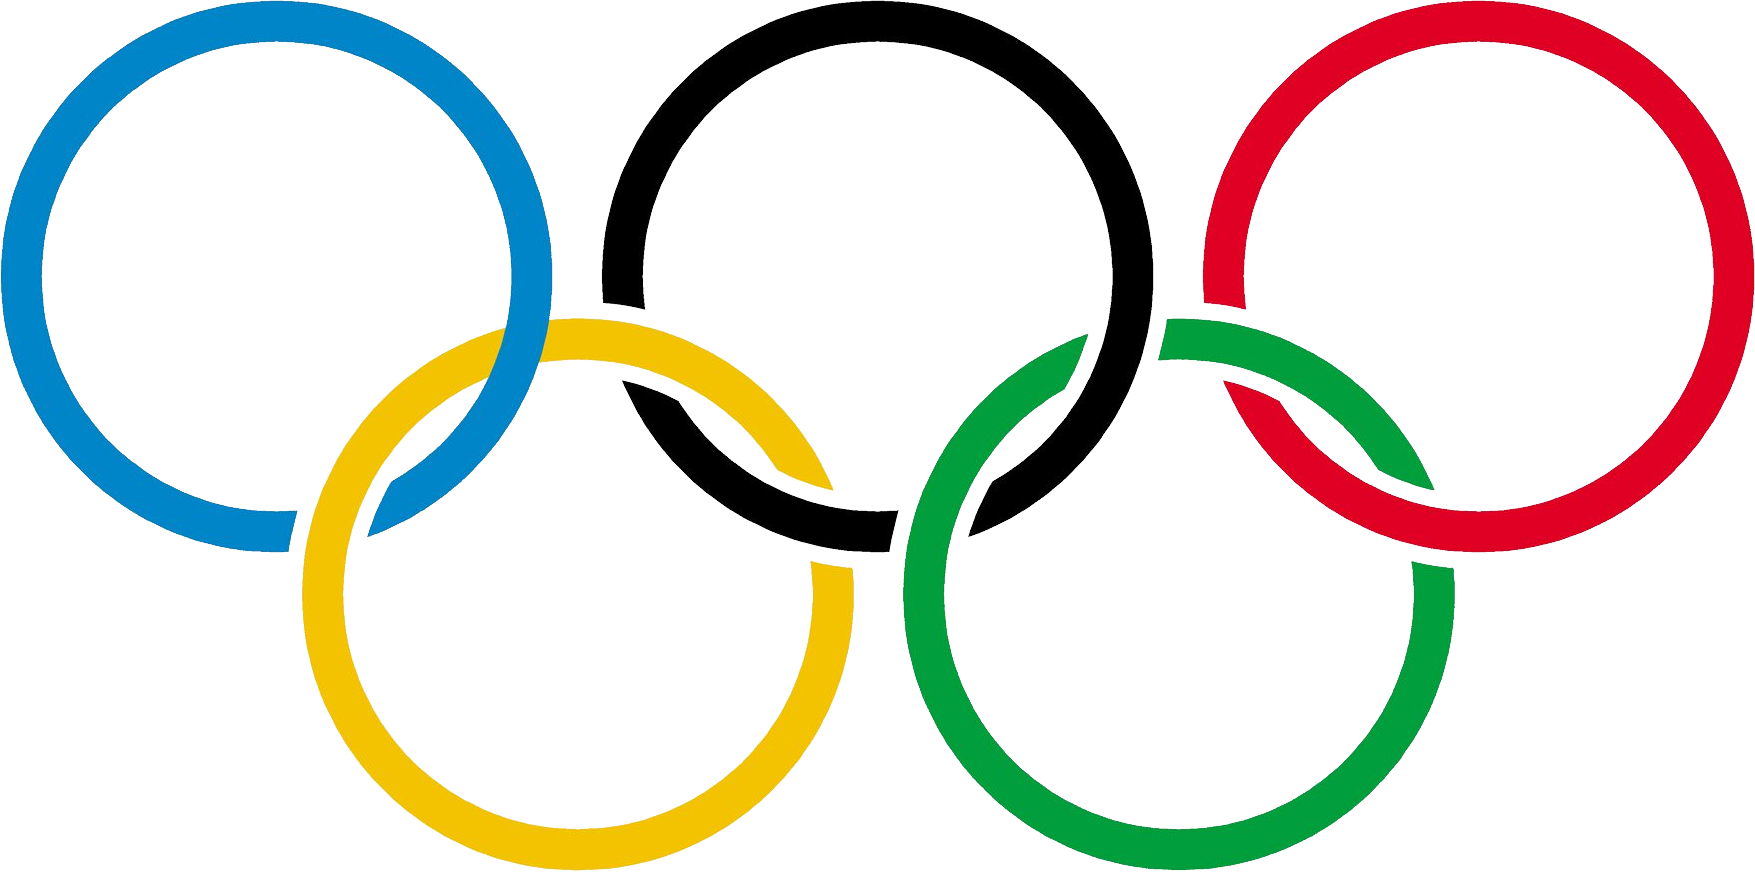 olympic rings png hd transparent olympic rings hd png images pluspng rh pluspng com Blank Olympic Rings Olympic Ring Colors